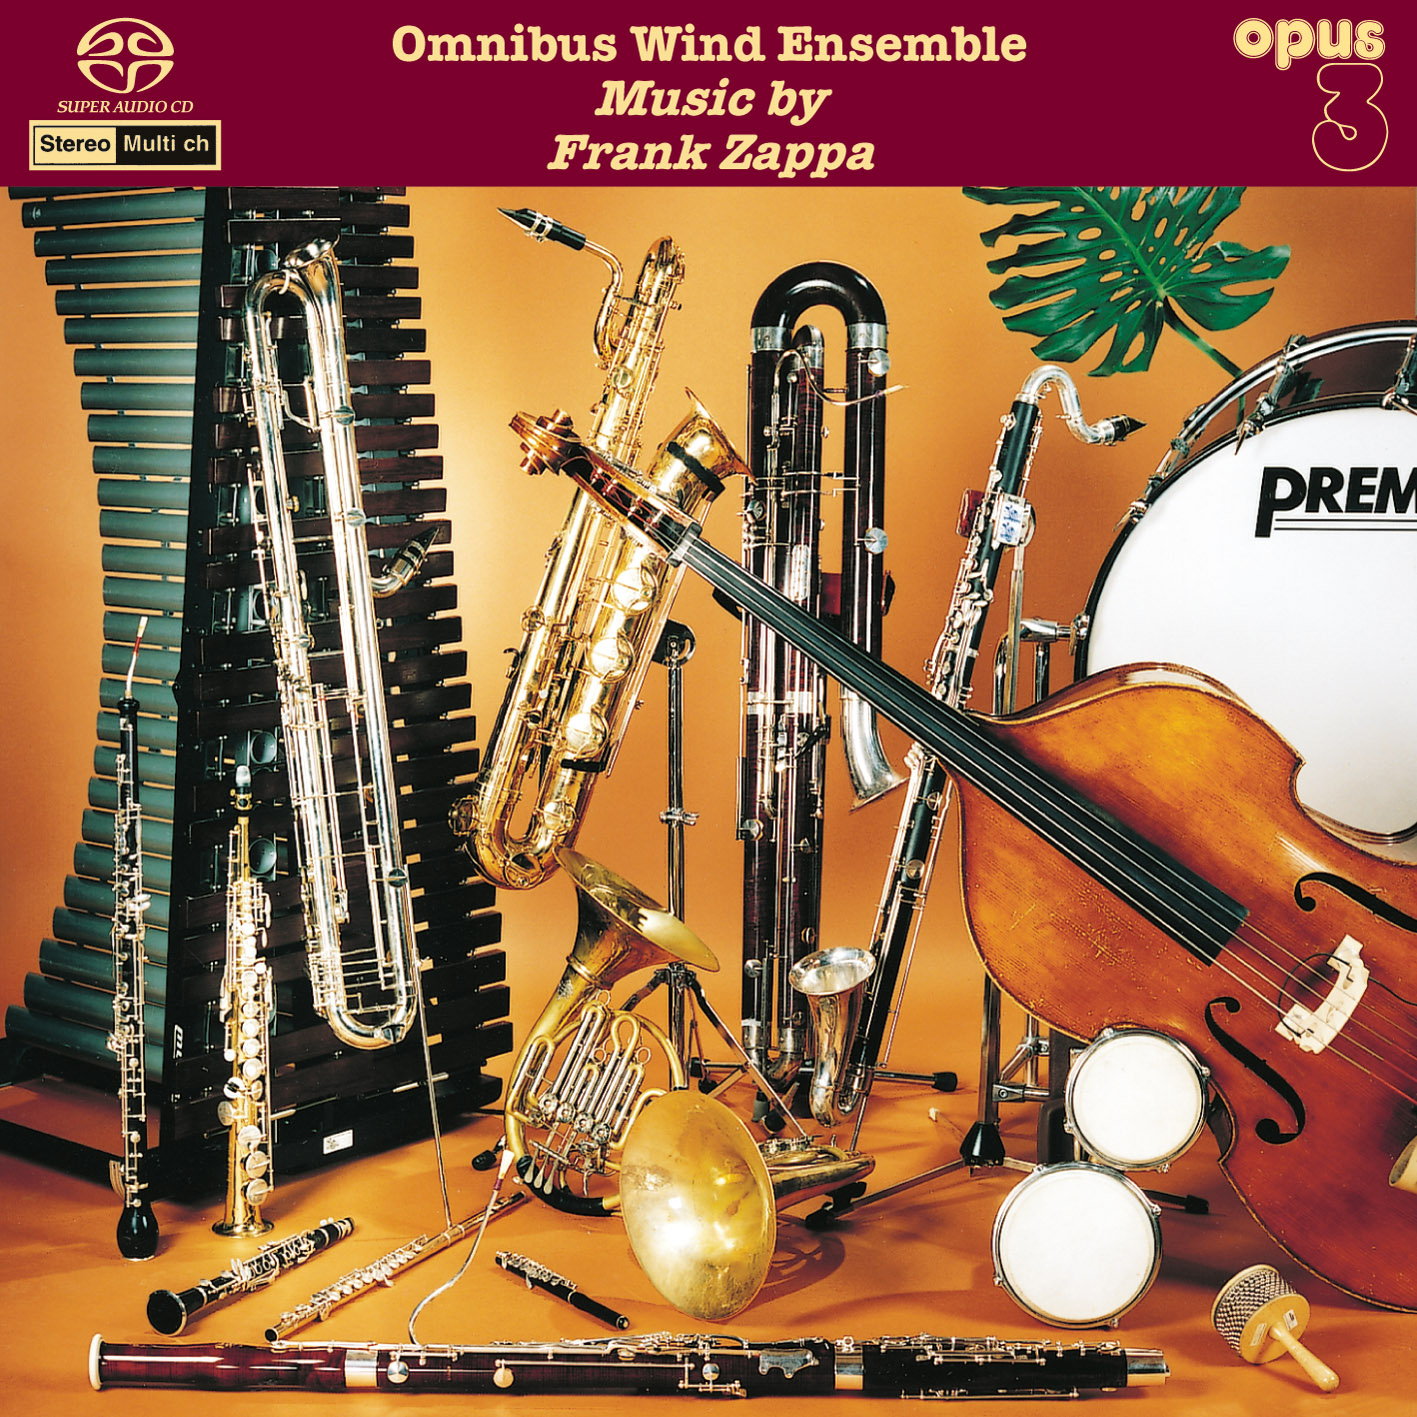 Omnibus Wind Ensemble - Music By Frank Zappa (1995/2014) [Official